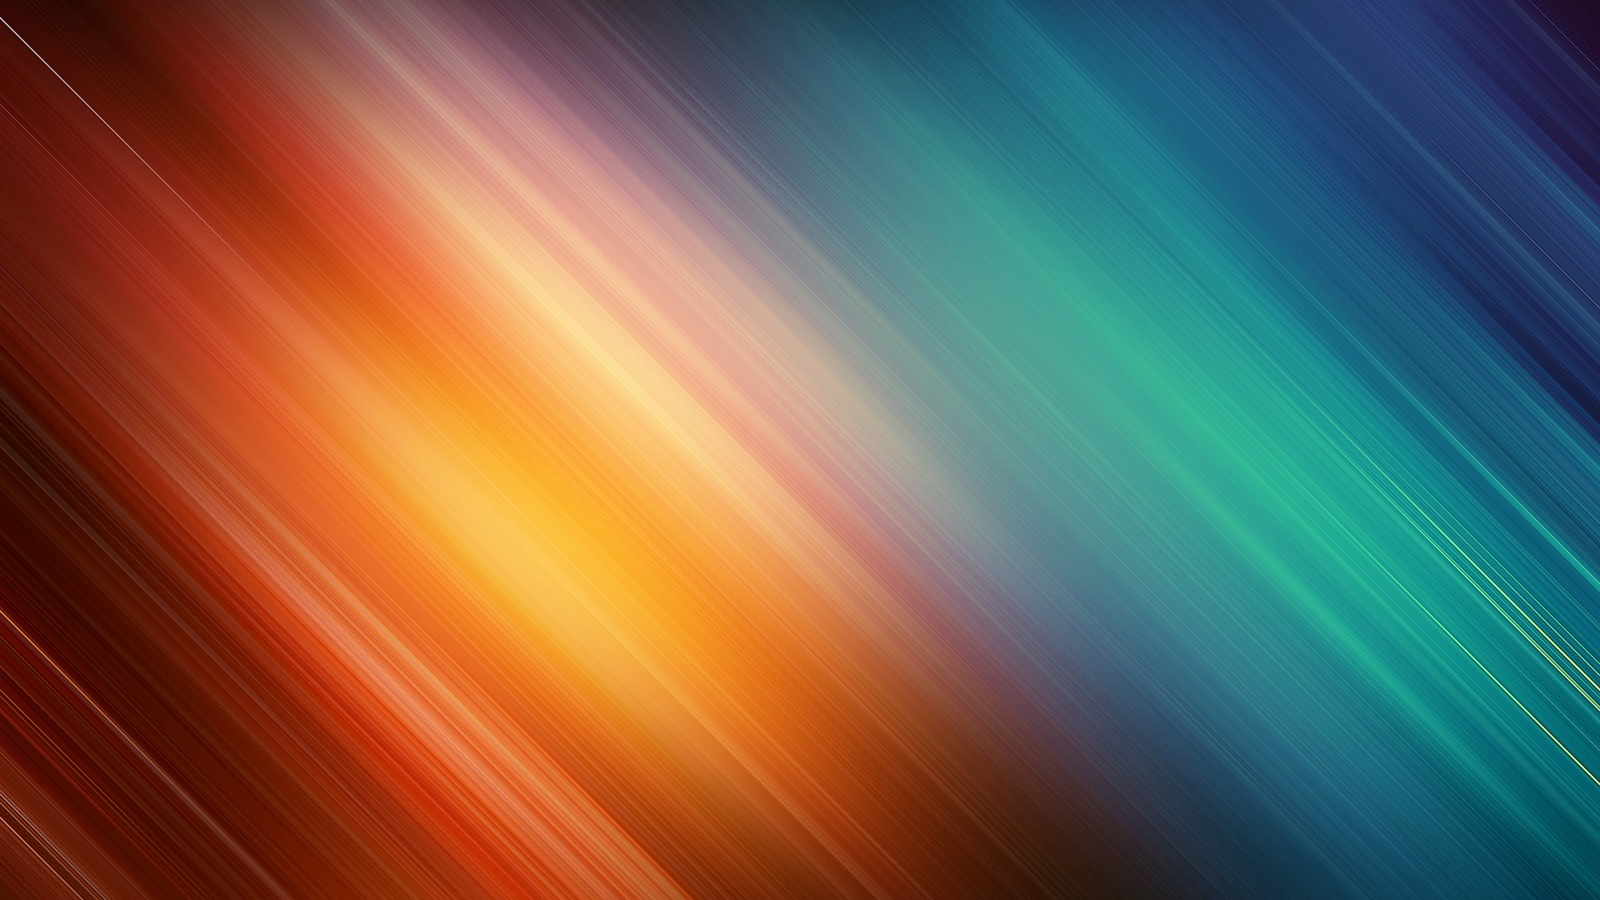 3d Flower Wallpapers For Iphone Wallpaper Orange And Blue Twill Background 1920x1200 Hd